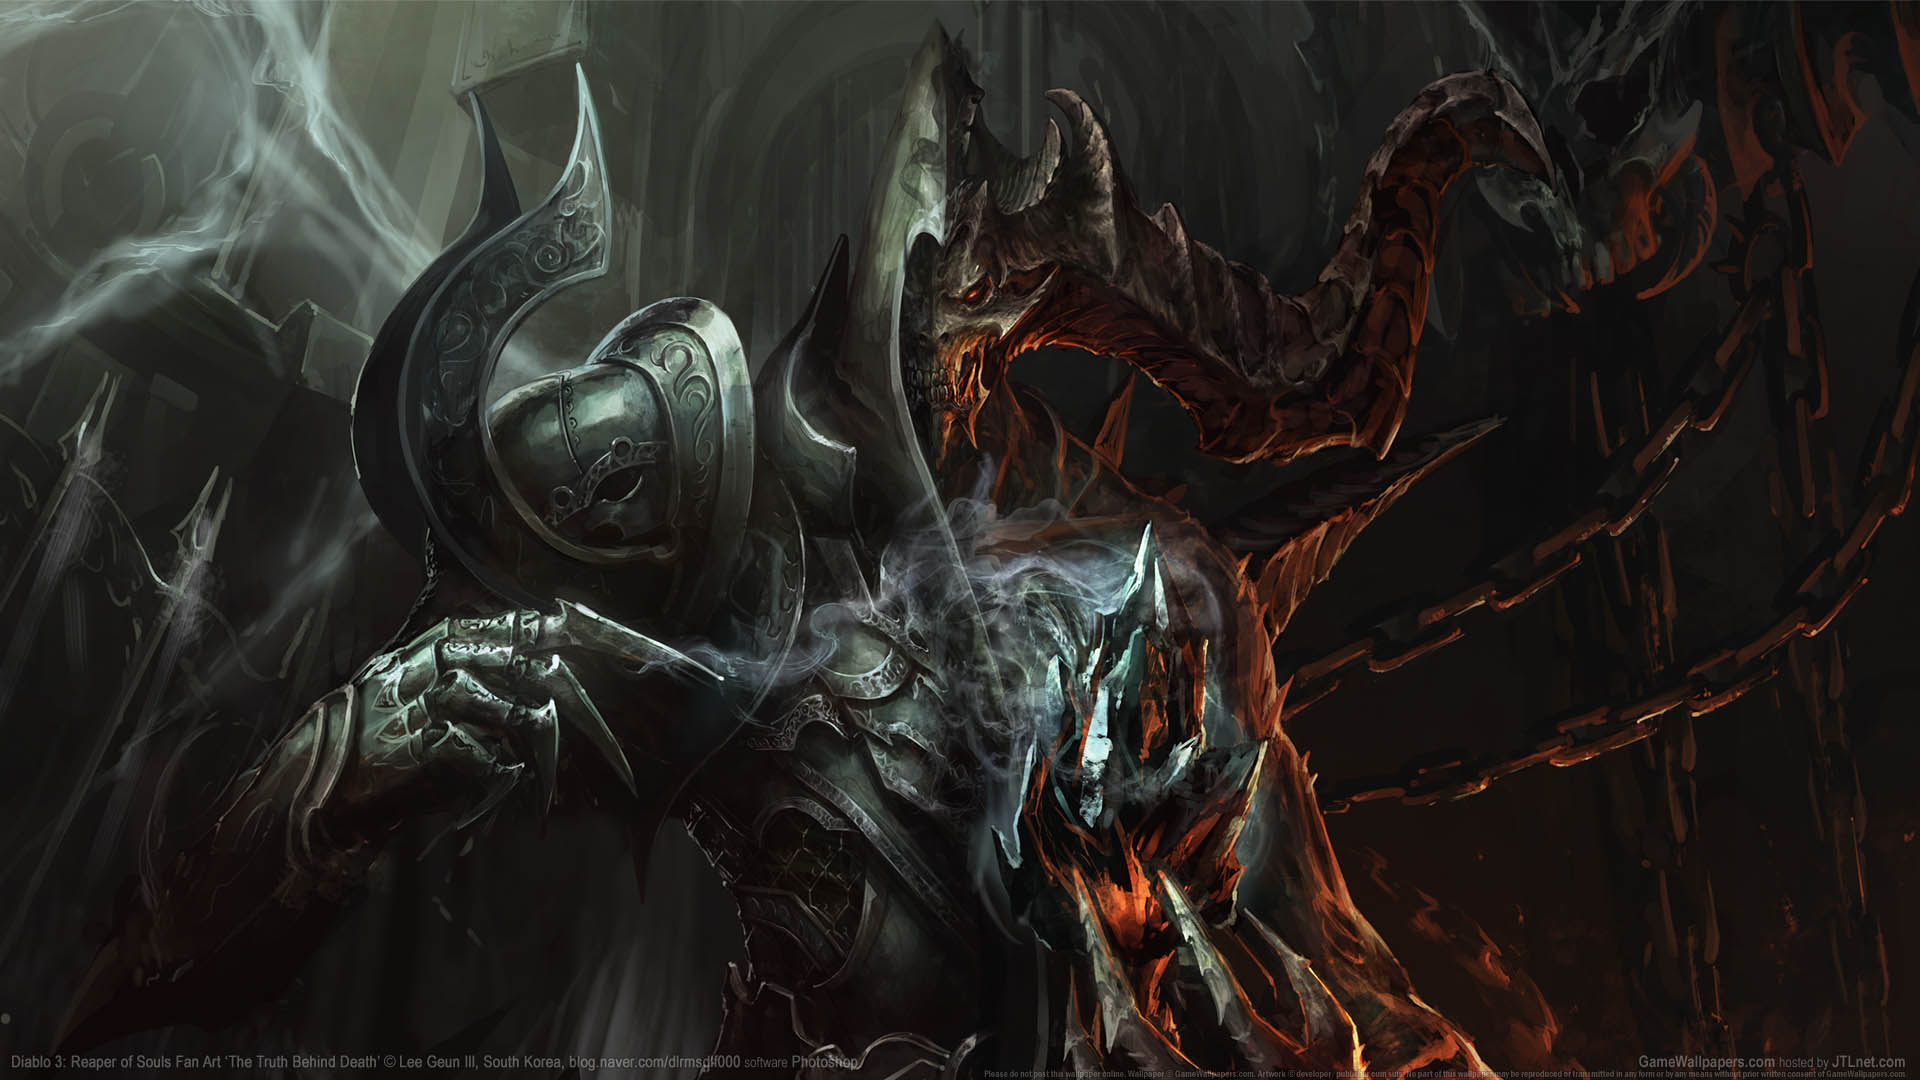 Diablo 3: Reaper of Souls Fan Art wallpaper 02 1920x1080